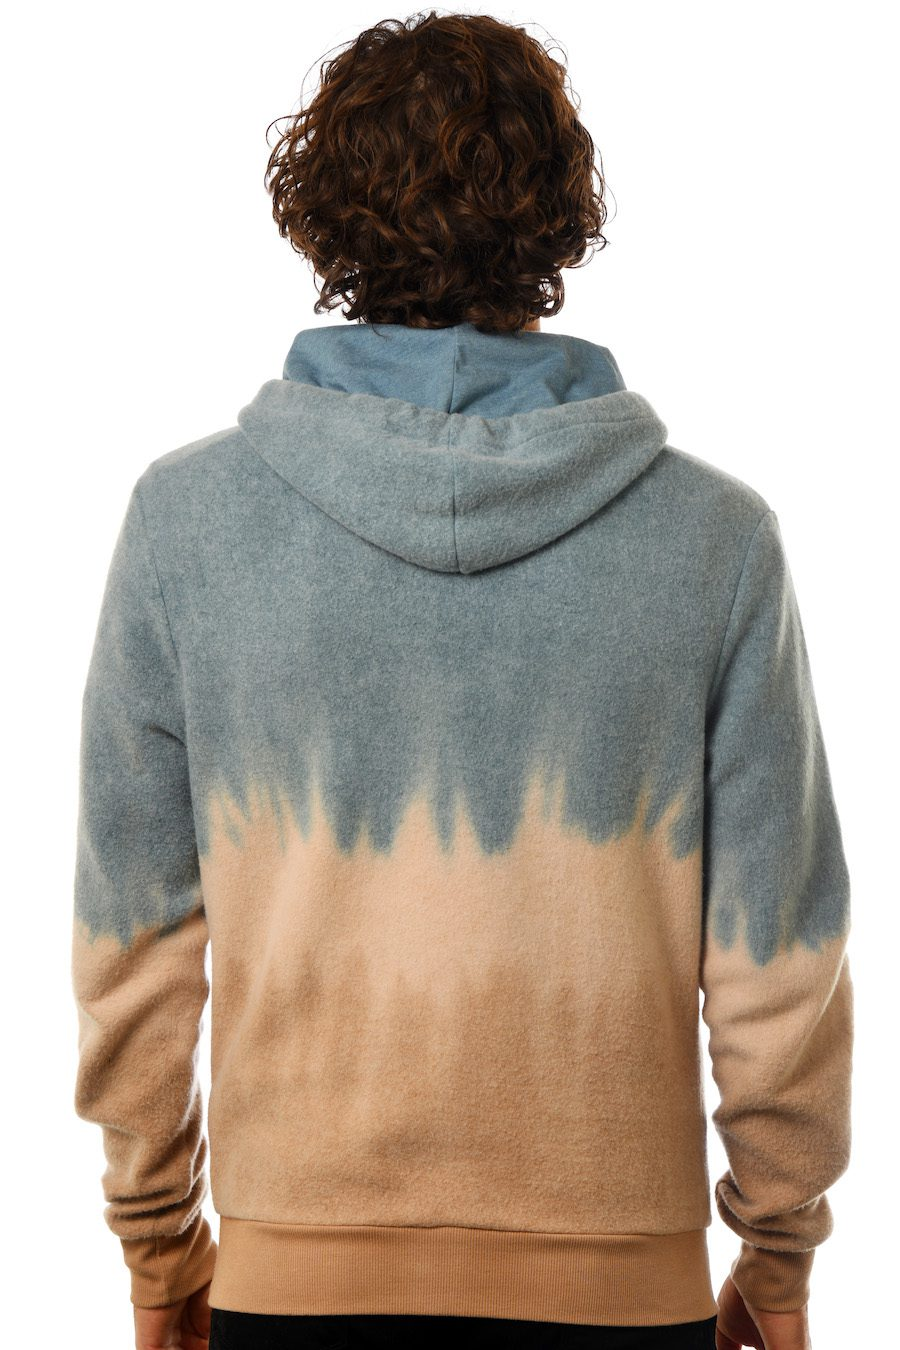 GG 799-F-TD Unisex Furry Tiedye Fleece -back